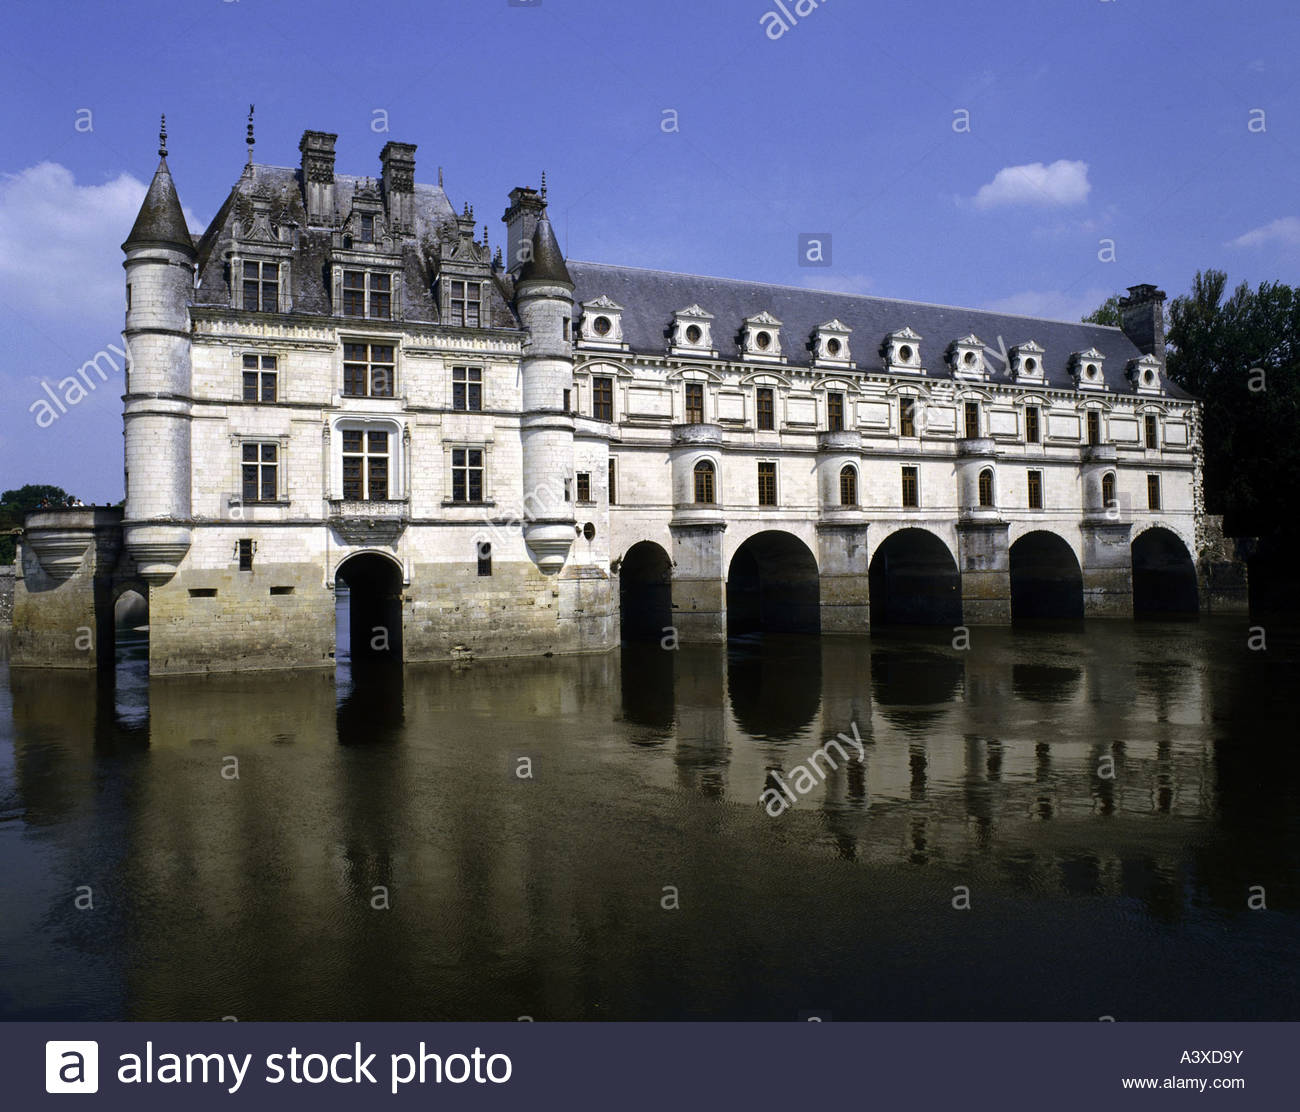 Architecture castles france chateau de chenonceau loire valley part of the castle over the river cher exterior view built